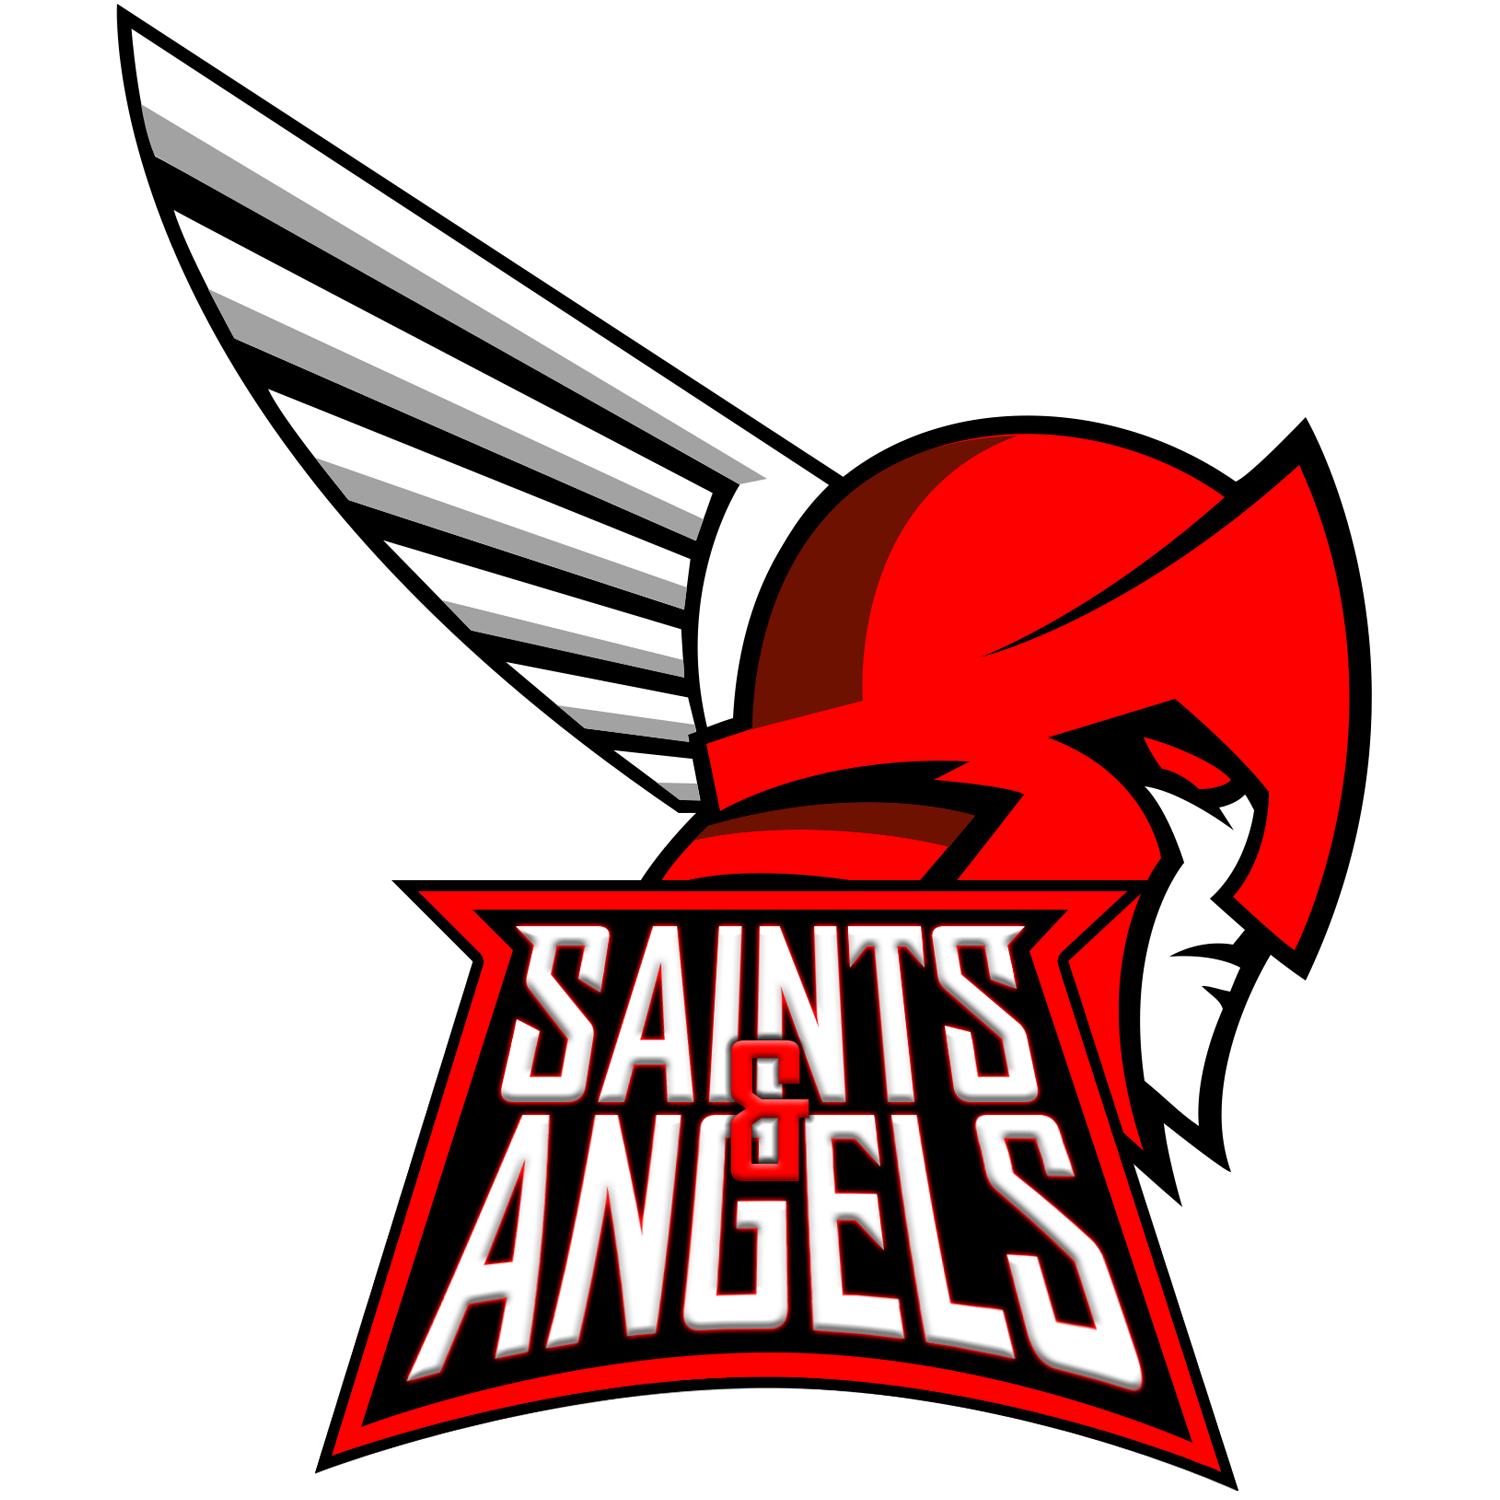 1500x1500 Filesaints And Angels Esportslogo Square.png